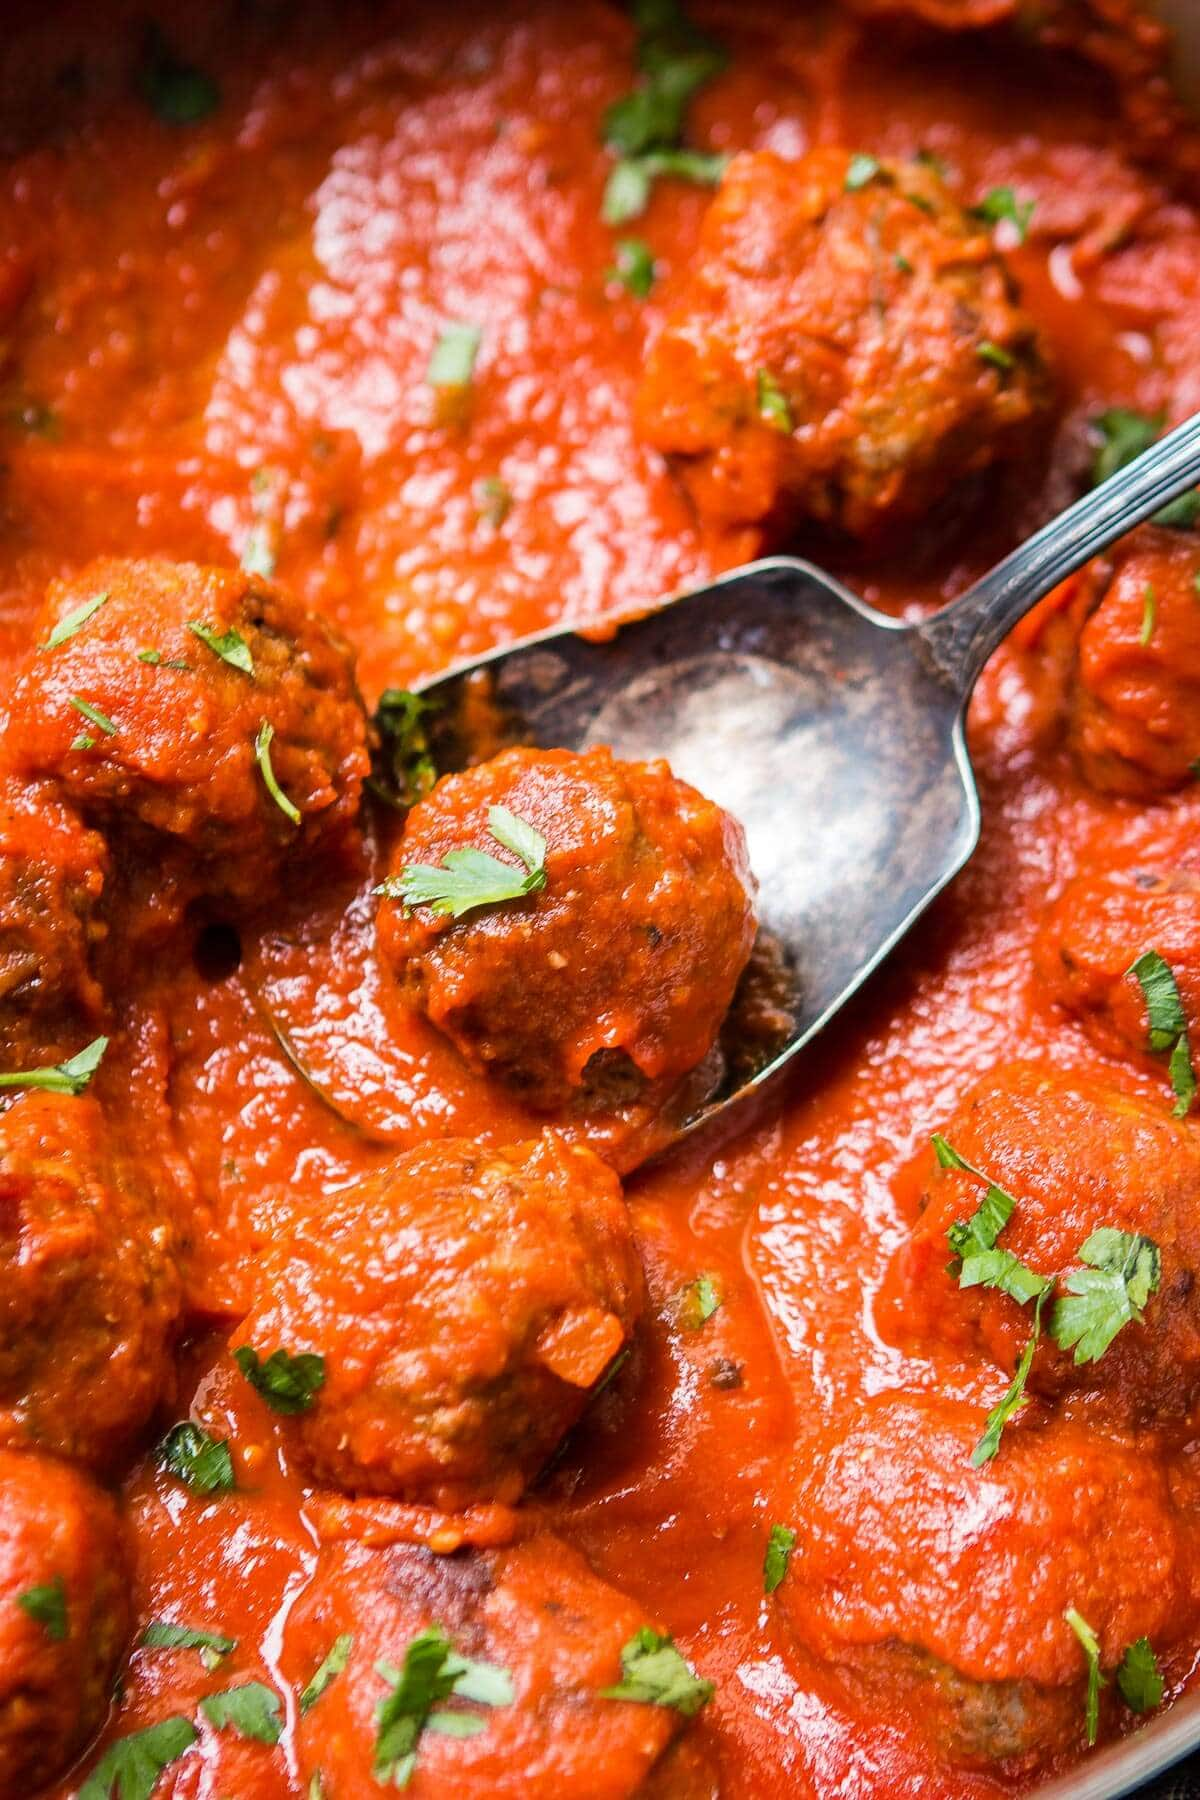 spoon in batch of porcupine meatballs